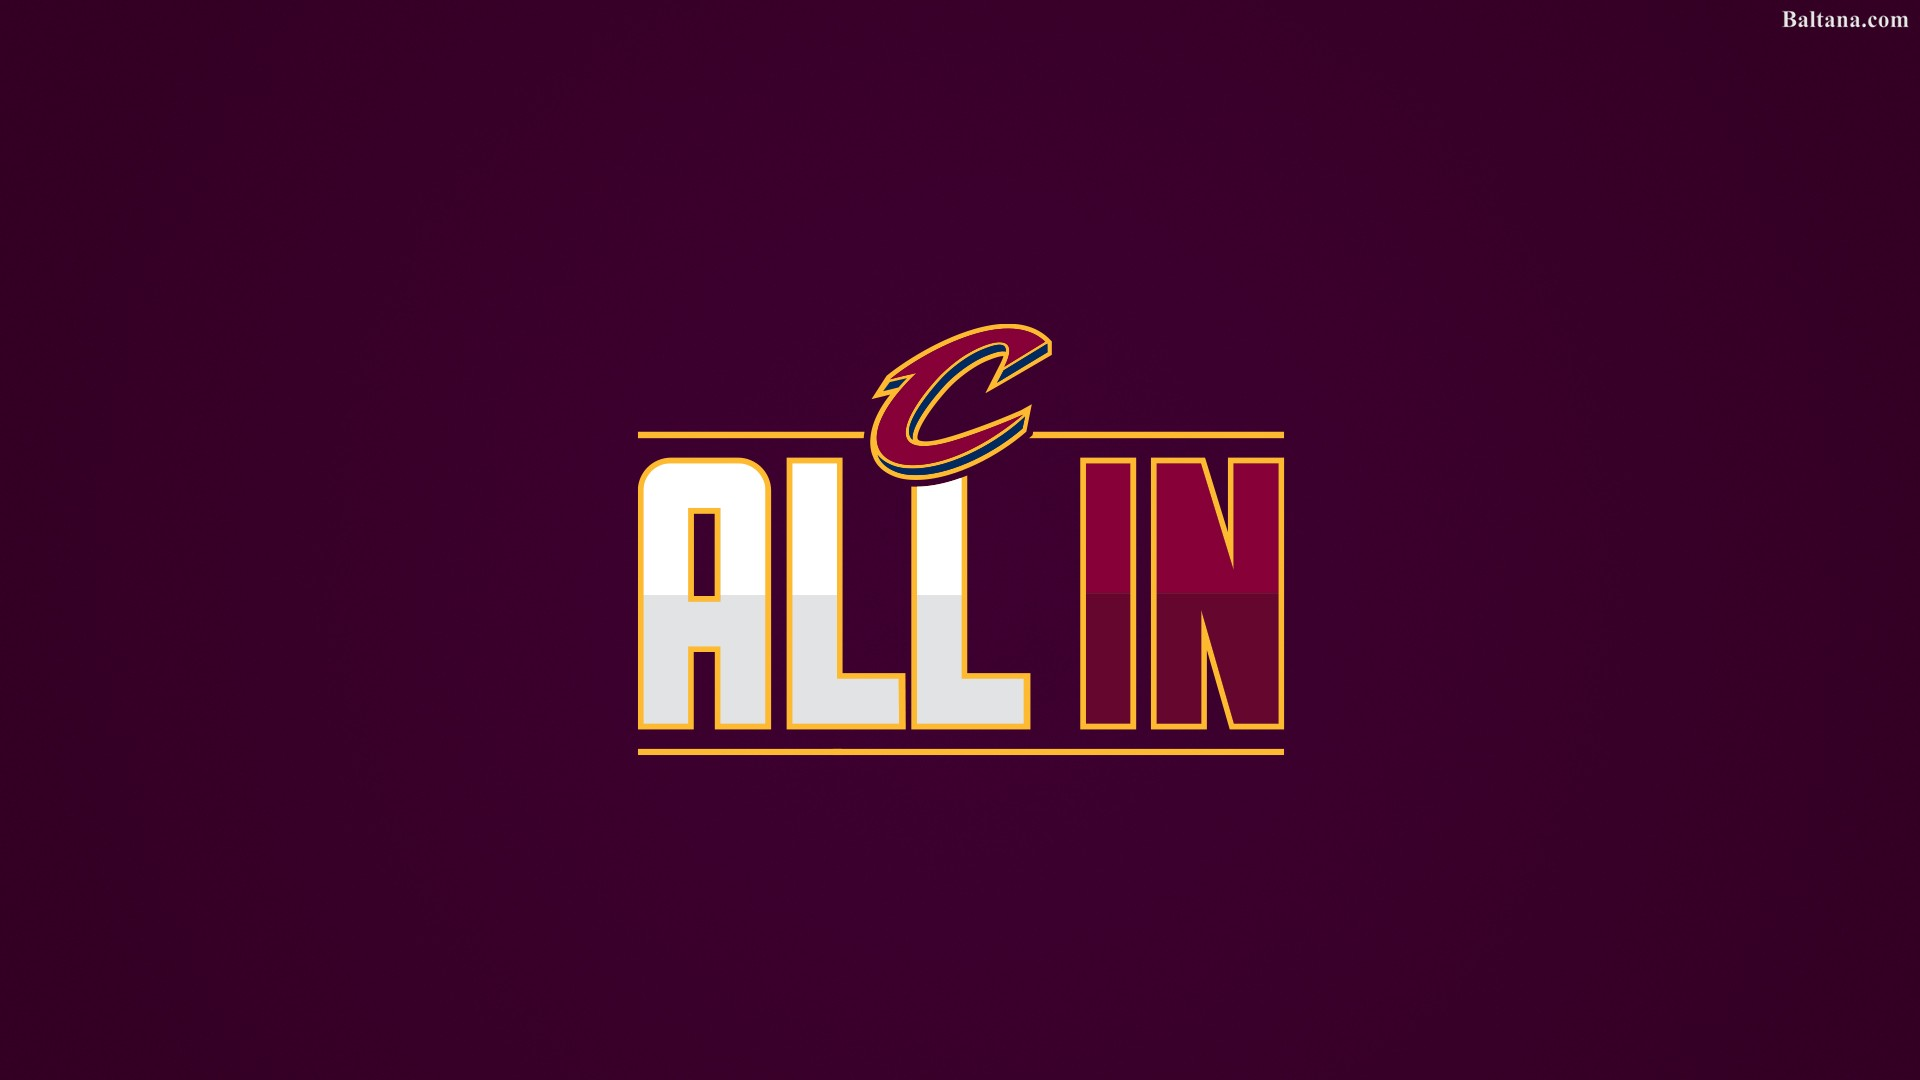 Golden State Wallpaper Iphone Cleveland Cavaliers Background Hd Wallpapers 33443 Baltana